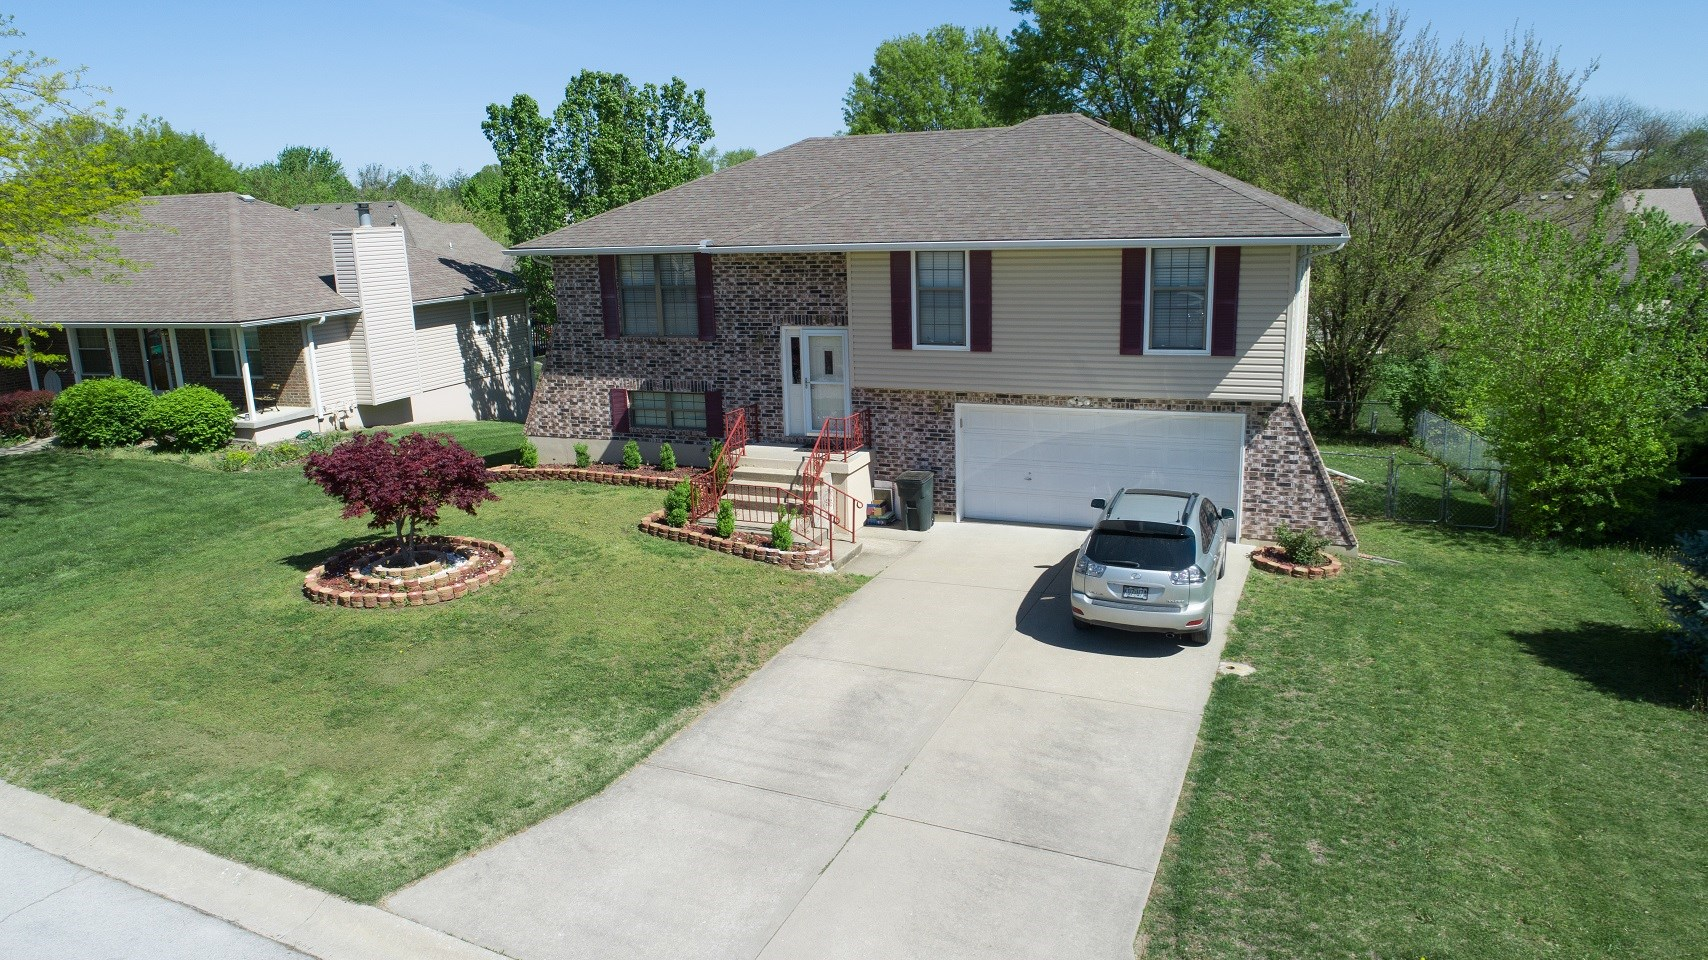 Lovely Home For Sale, Claymont Subdivision, Warrensburg Mo